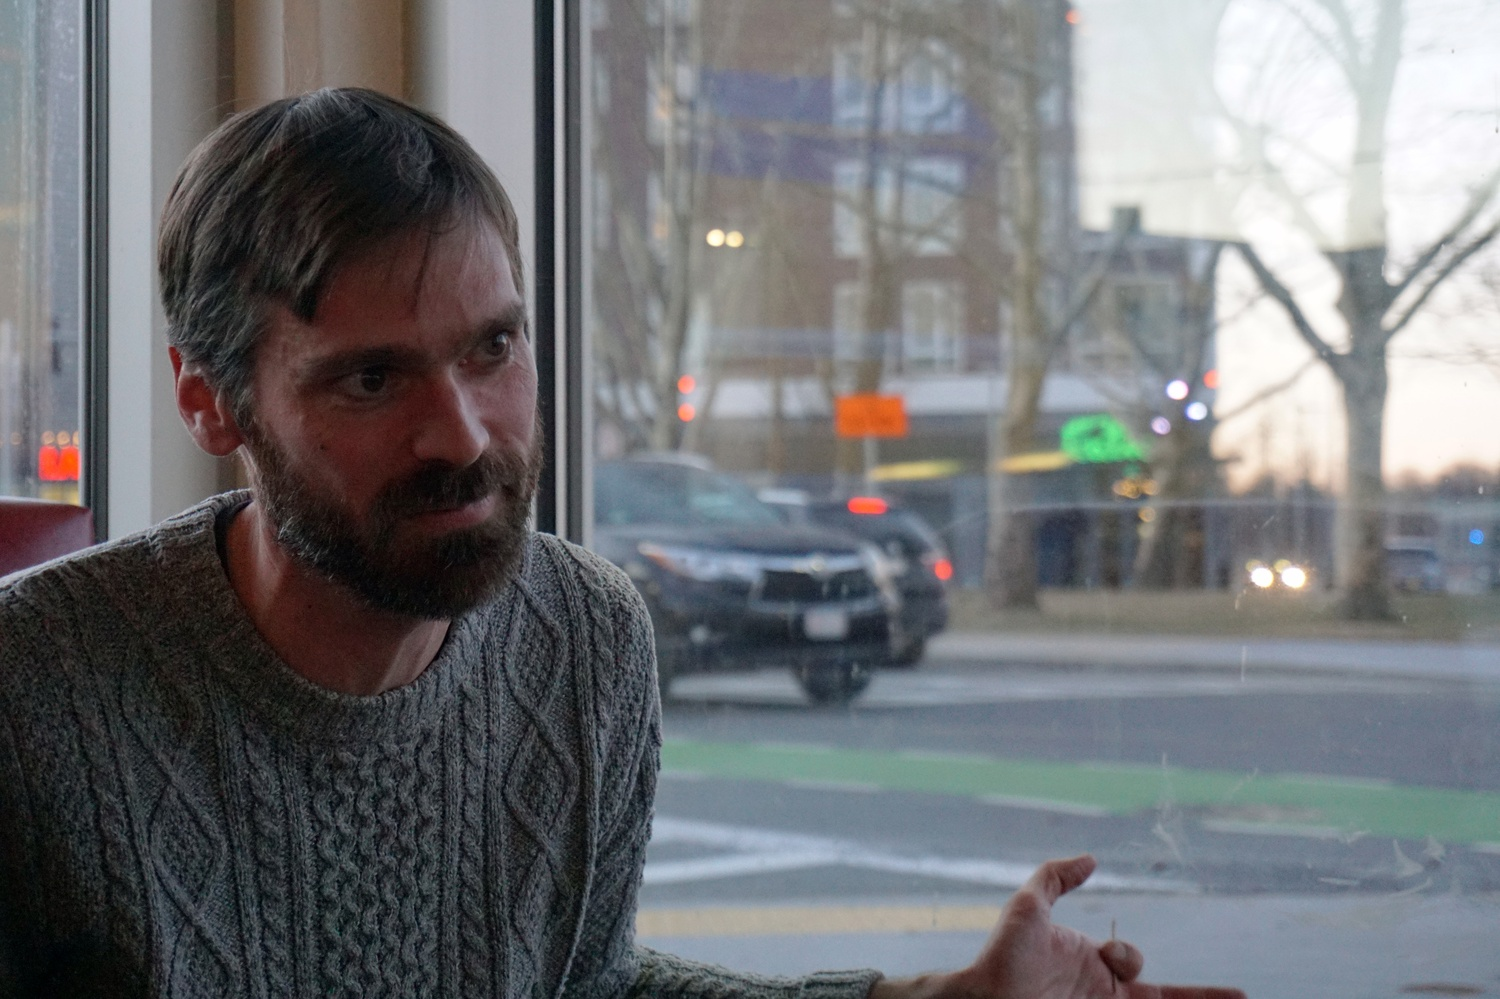 Galen M. Mook is an Allston transit advocate and bike store proprietor.